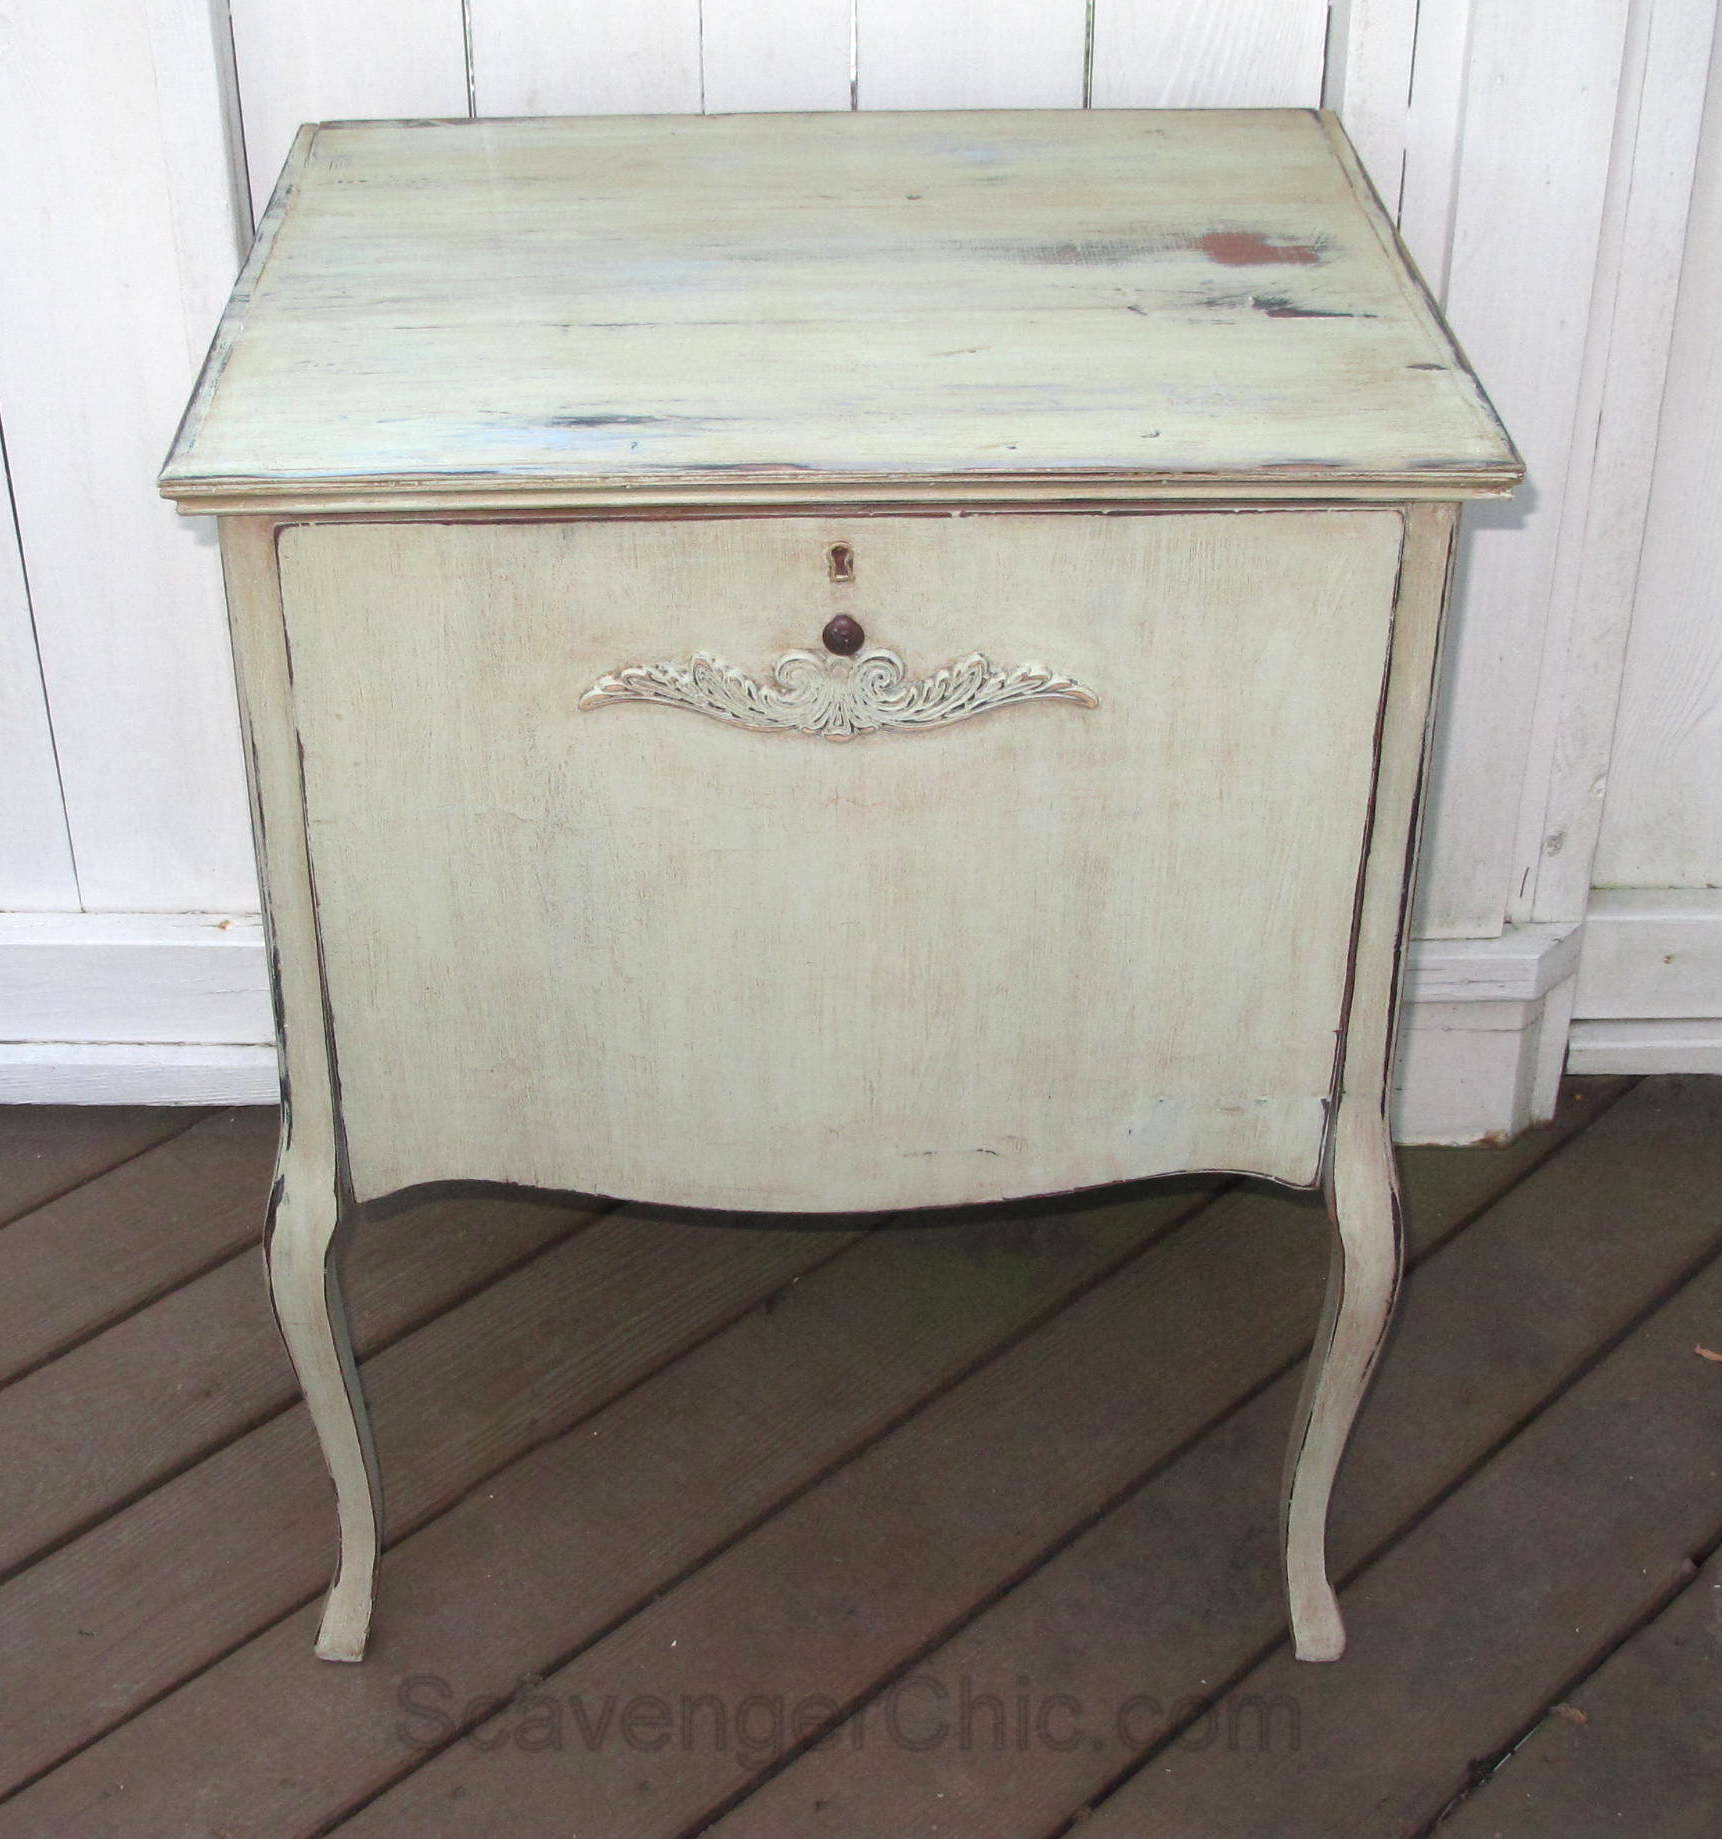 Saved from the Dump, Vintage Record Cabinet - Scavenger Chic